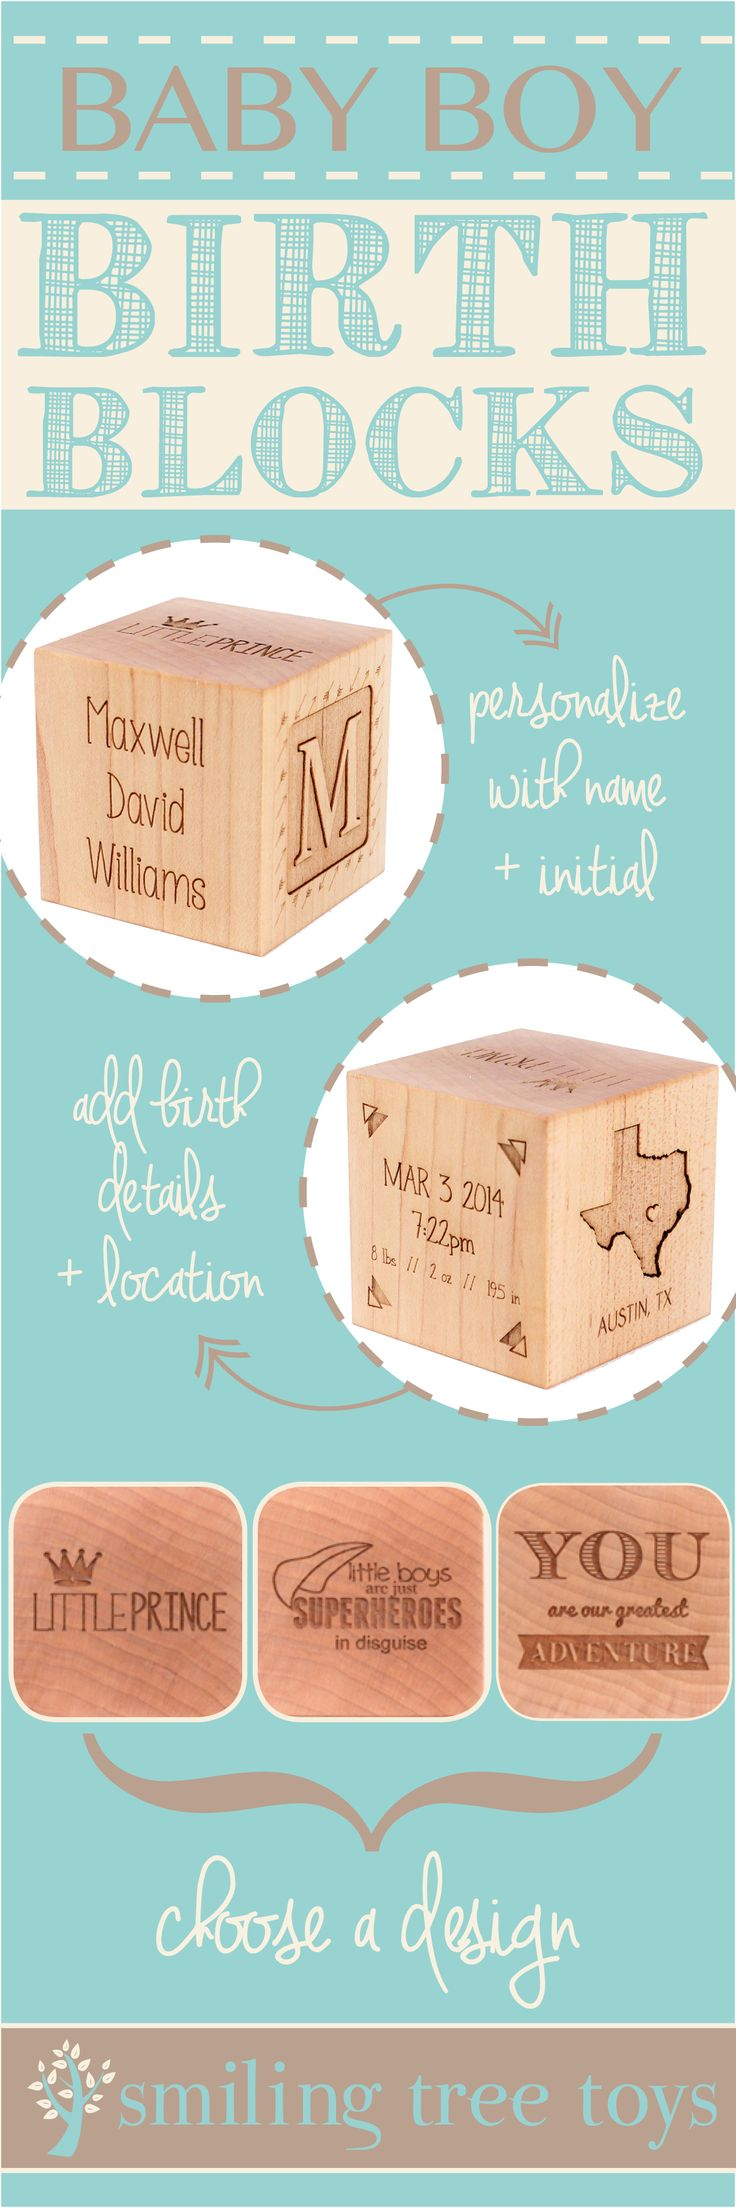 33 best blocks smiling tree toys images on pinterest wooden keepsake boy birth block the perfect personalized natural heirloom gift celebrating baby negle Choice Image